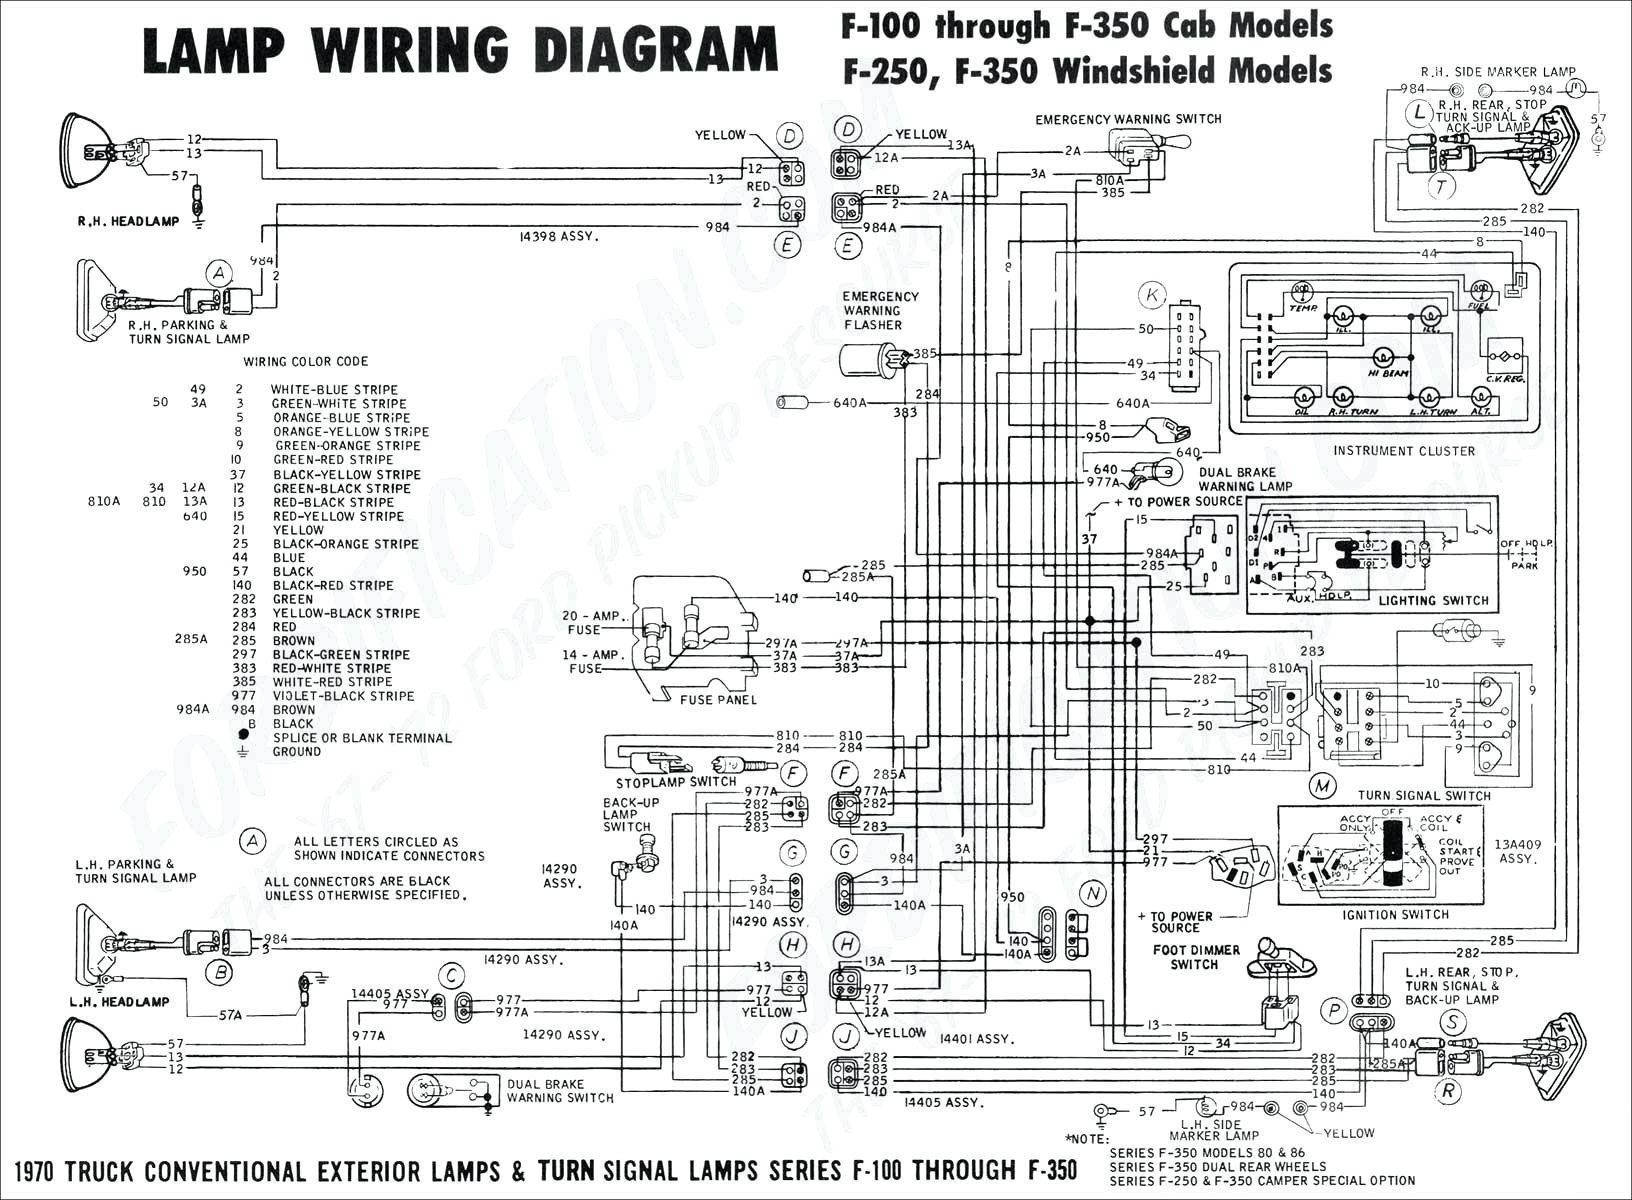 2004 dodge durango engine diagram re u0026quot  models how to swap